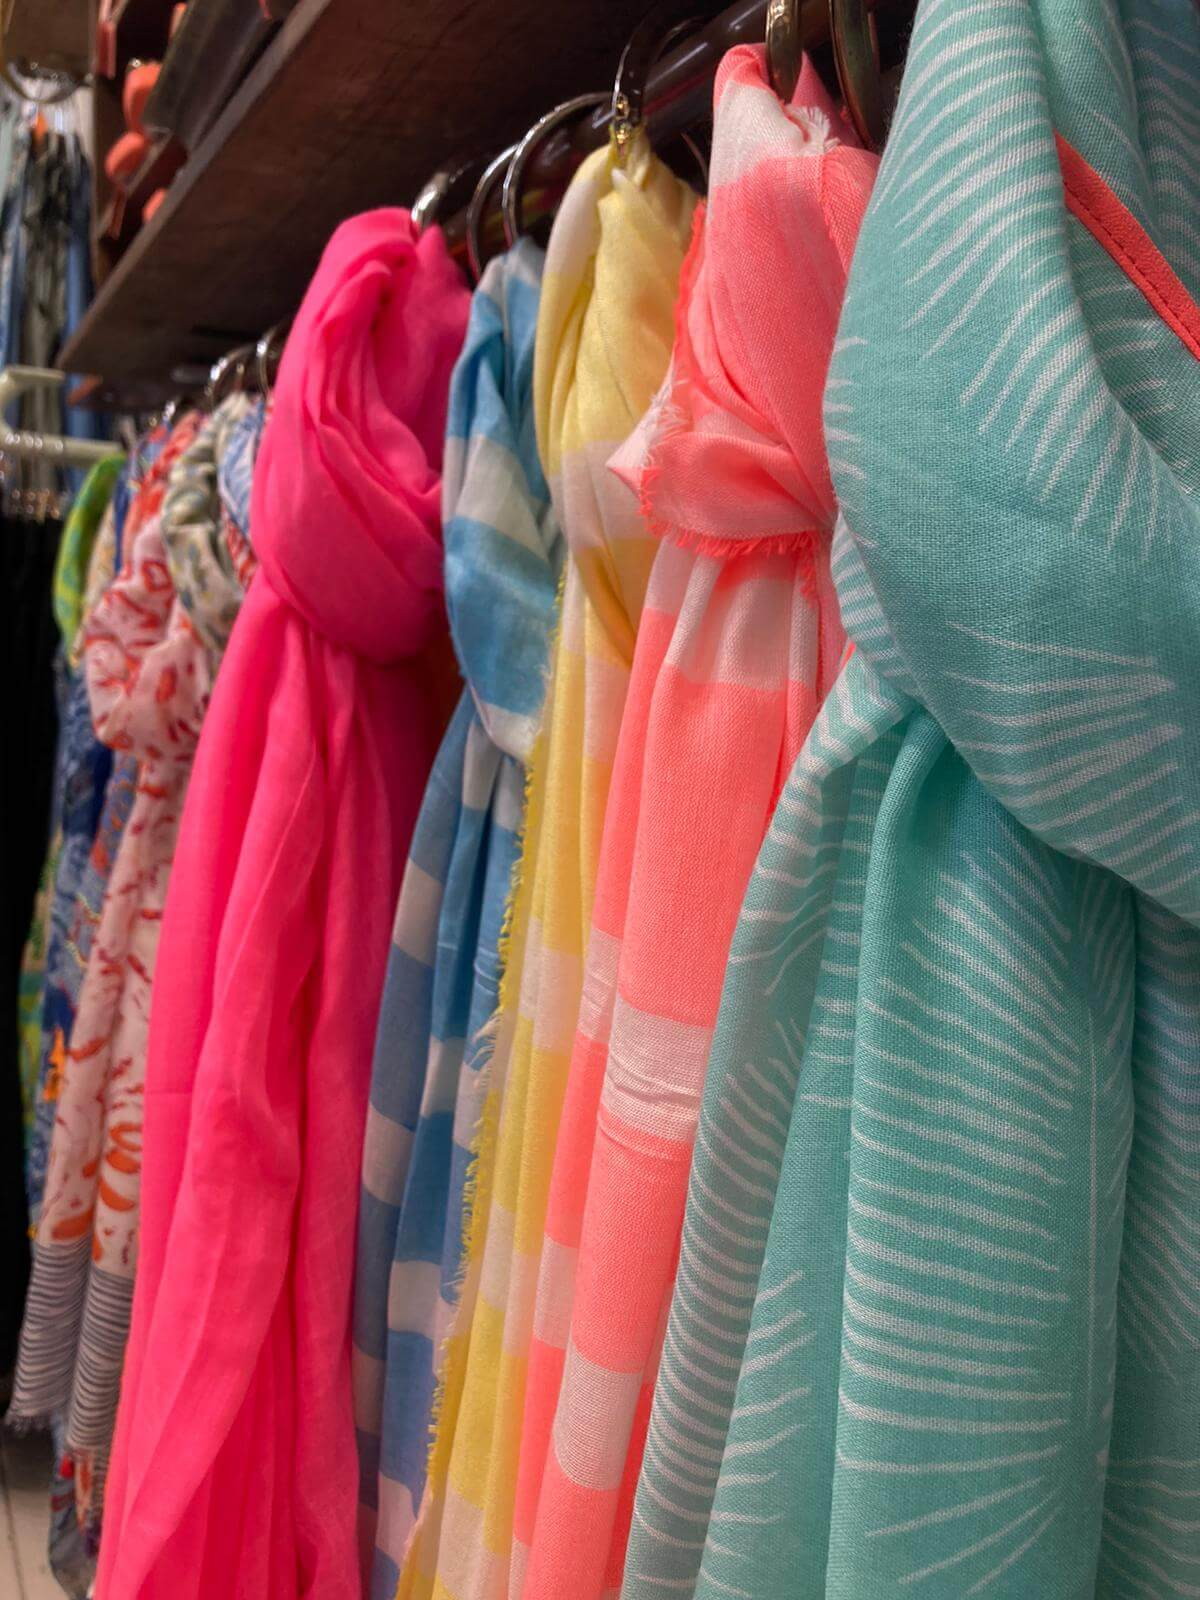 Colourful scarves nailsworth A&G